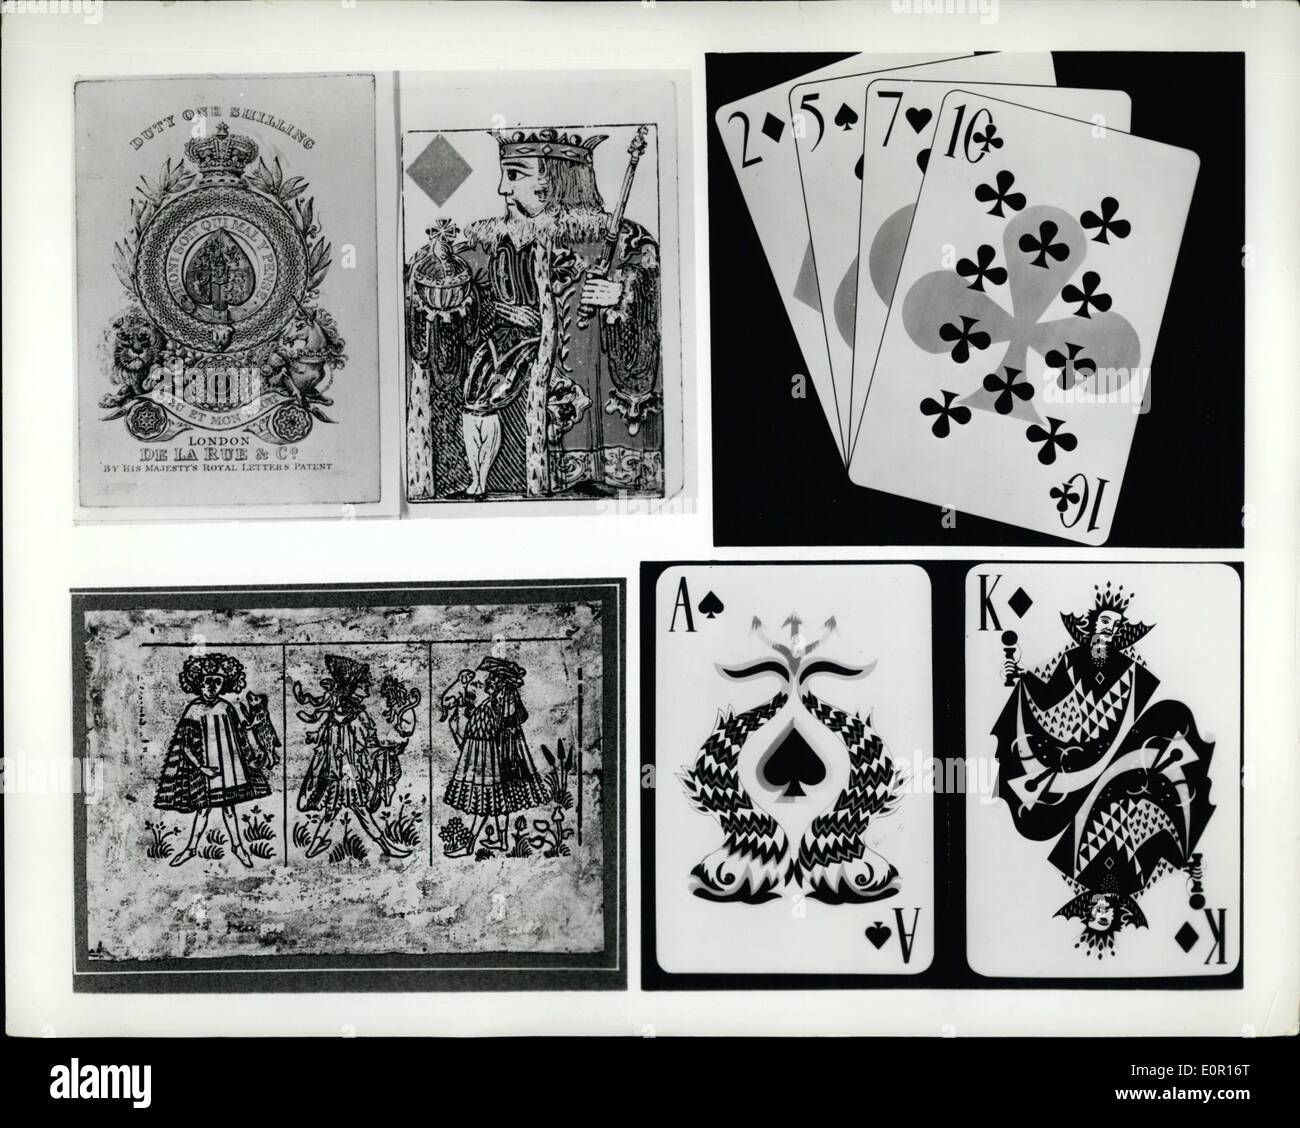 Sep. 09, 1957 - 125th Anniversary Of Playing card Printing To Be Celebrated: Delegates from all over the world will gather in London on October 8 and 9 for a conference of playing card manufacturers to mark the 125th anniversary of the first printing of playing cards by the typographical process. A highlight of the conference will be an exhibition of playing cards spanning five centuries. Photo shows: Some playing cards to be exhibited - Stock Image